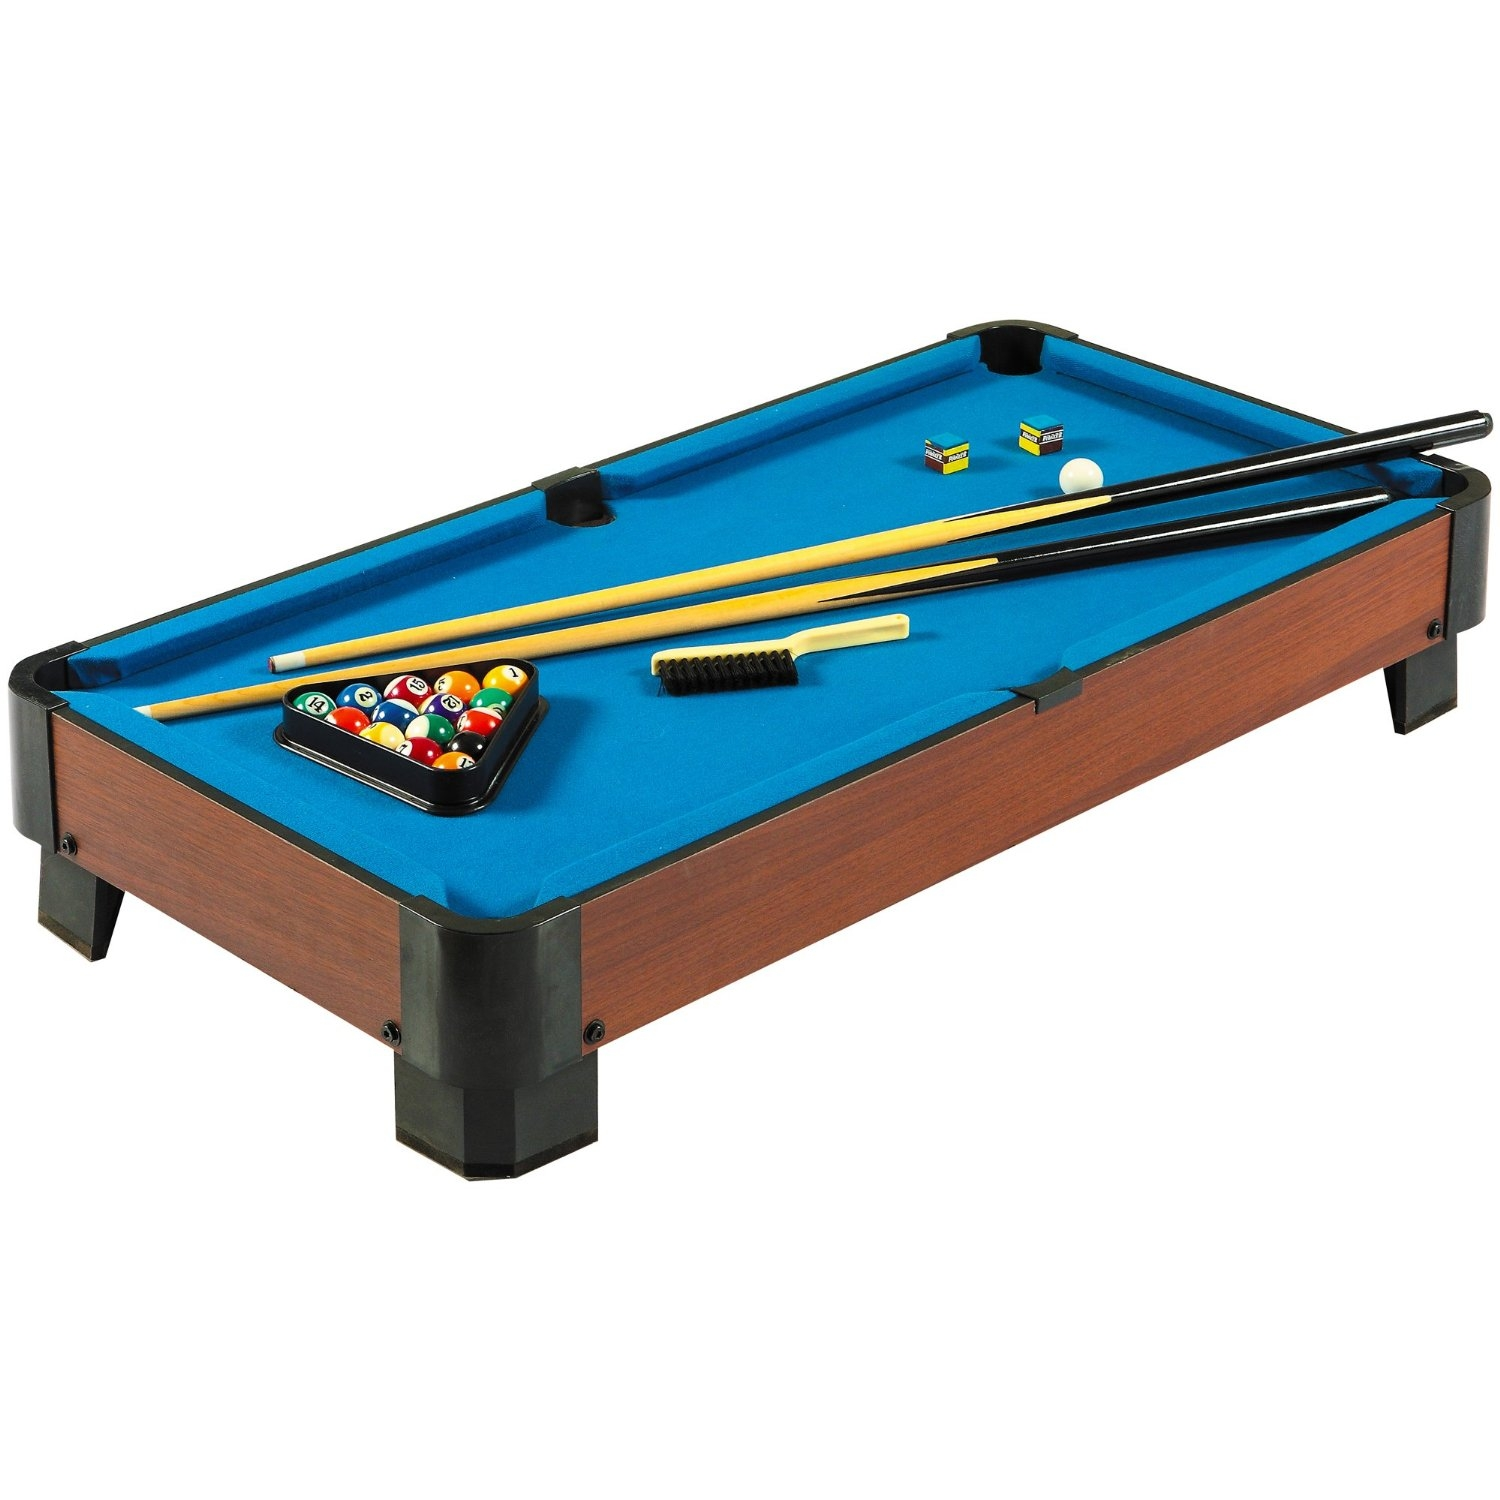 Charmant 40 Inch Pool Table With Blue Felt Surface 2 Cues And Billiard Balls